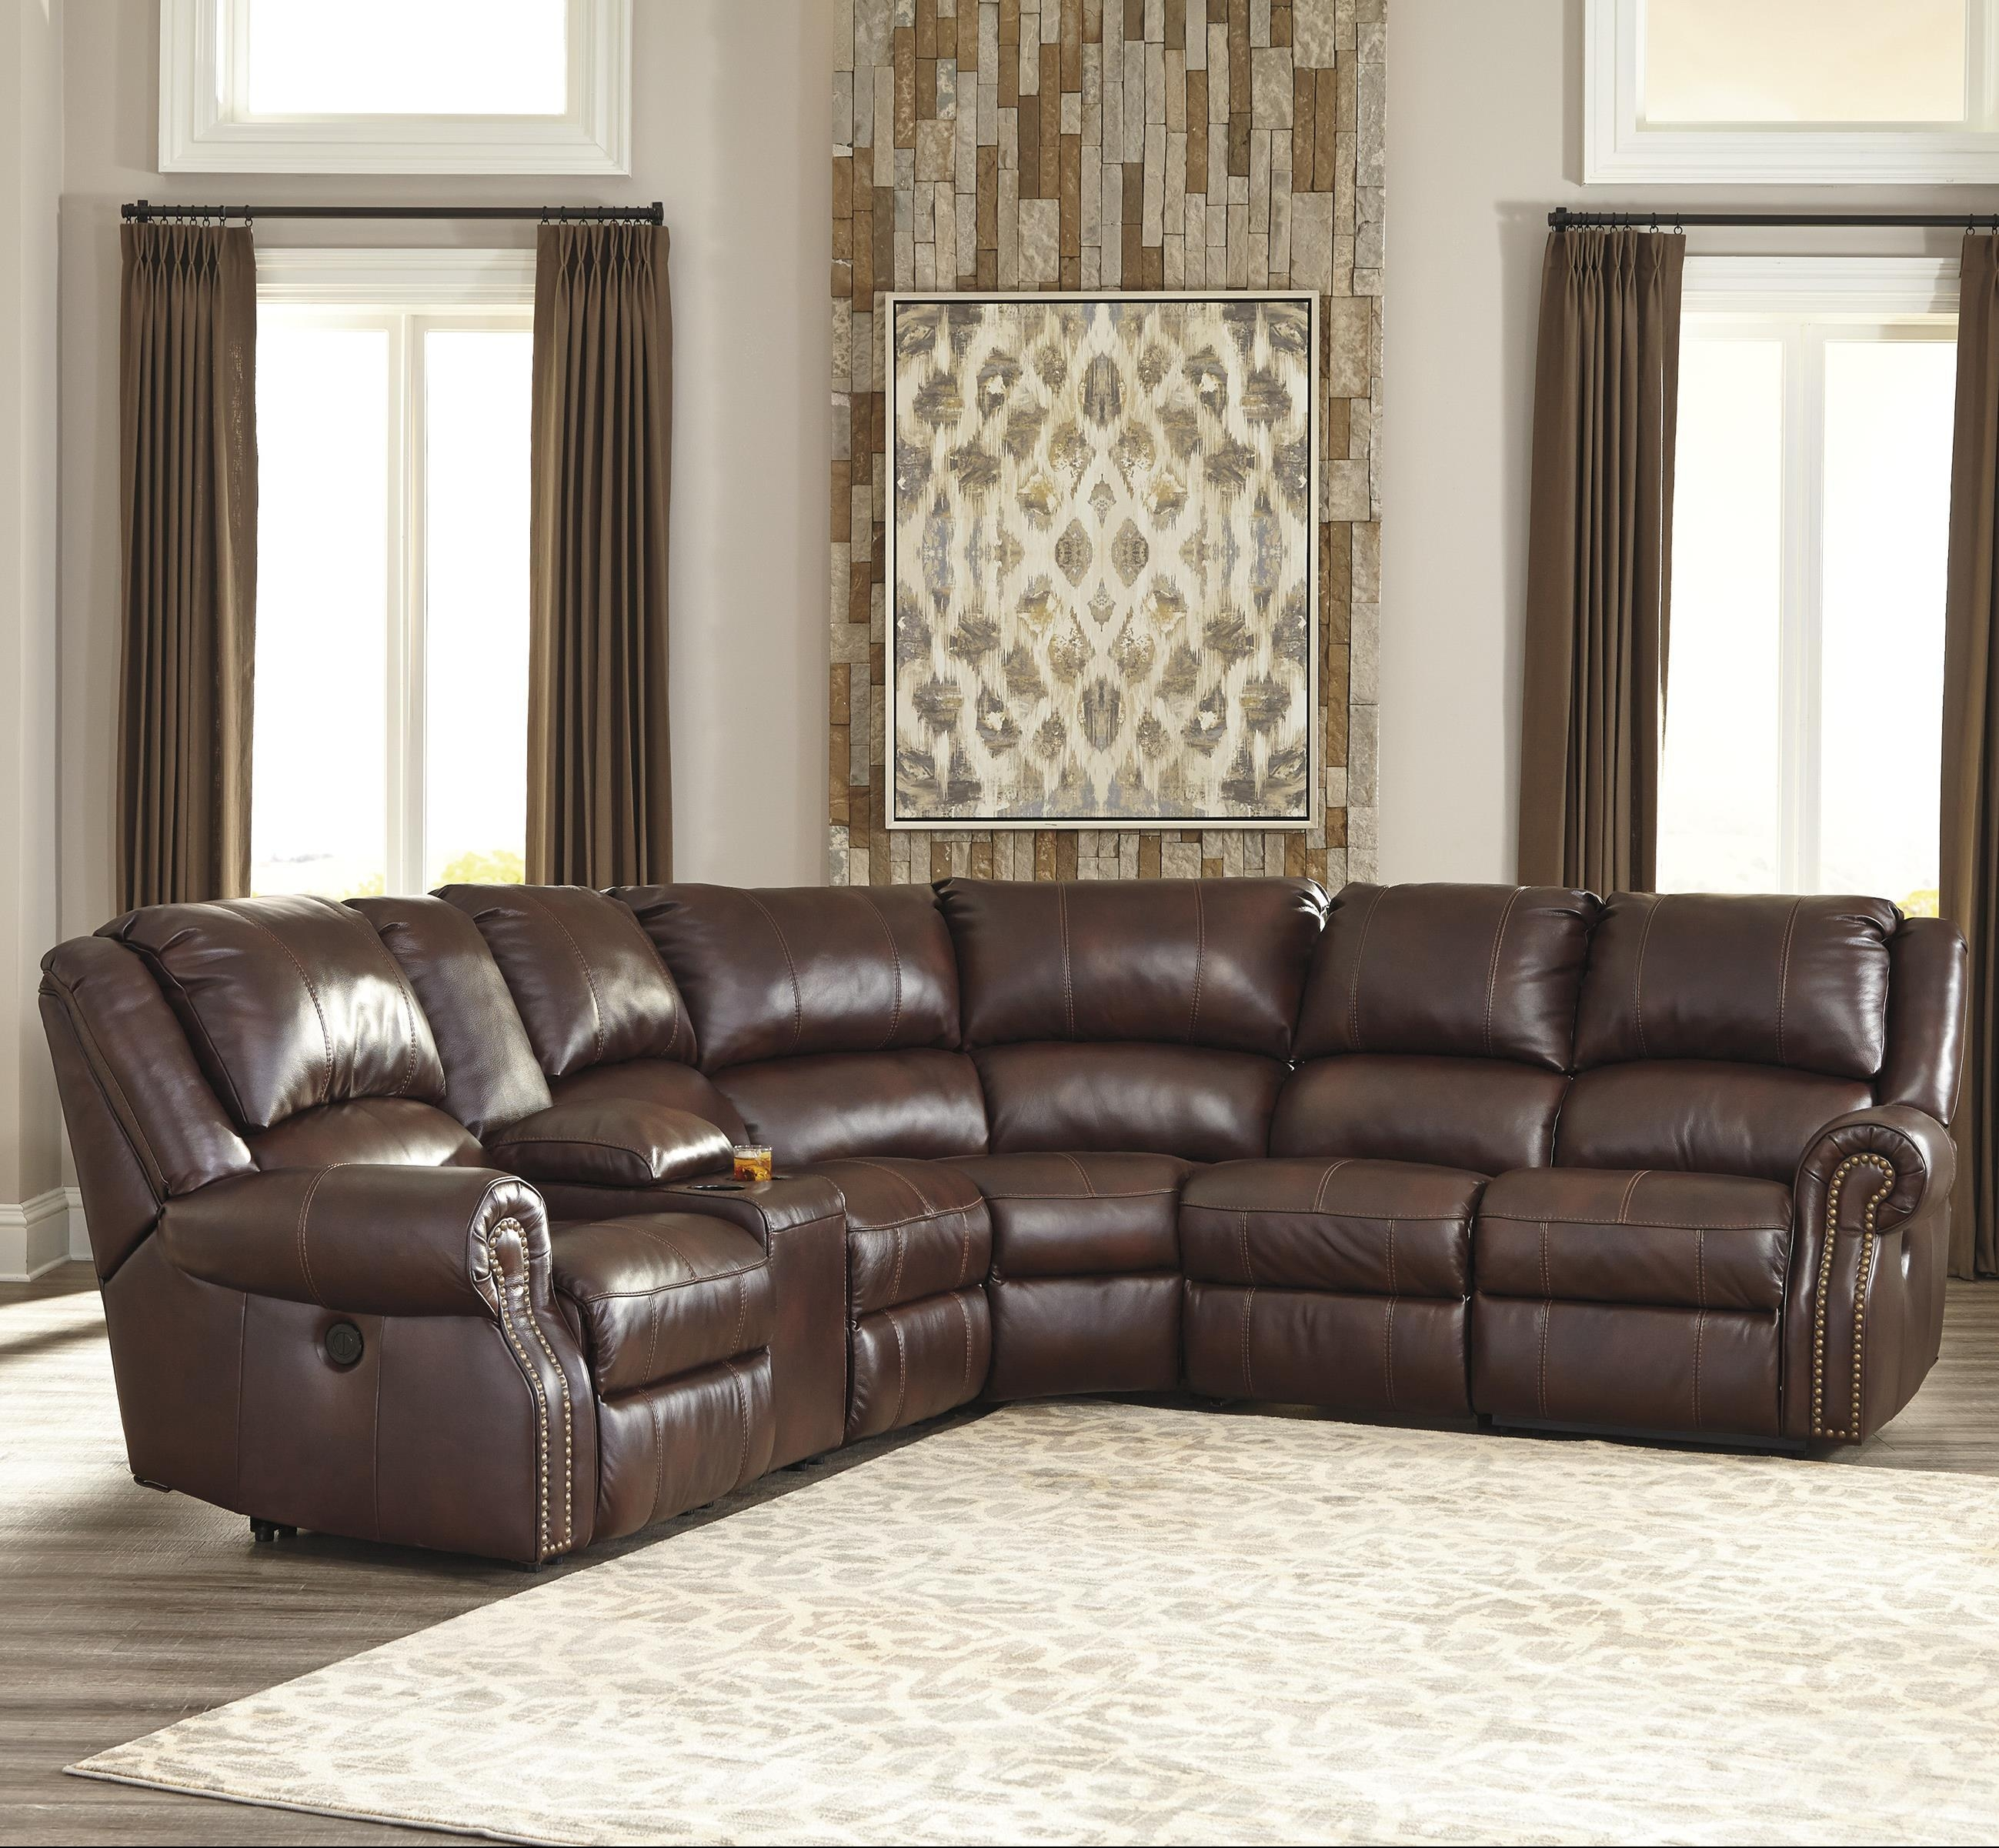 Signature Designashley Collinsville 6 Piece Reclining In 6 Piece Leather Sectional Sofa (View 13 of 15)